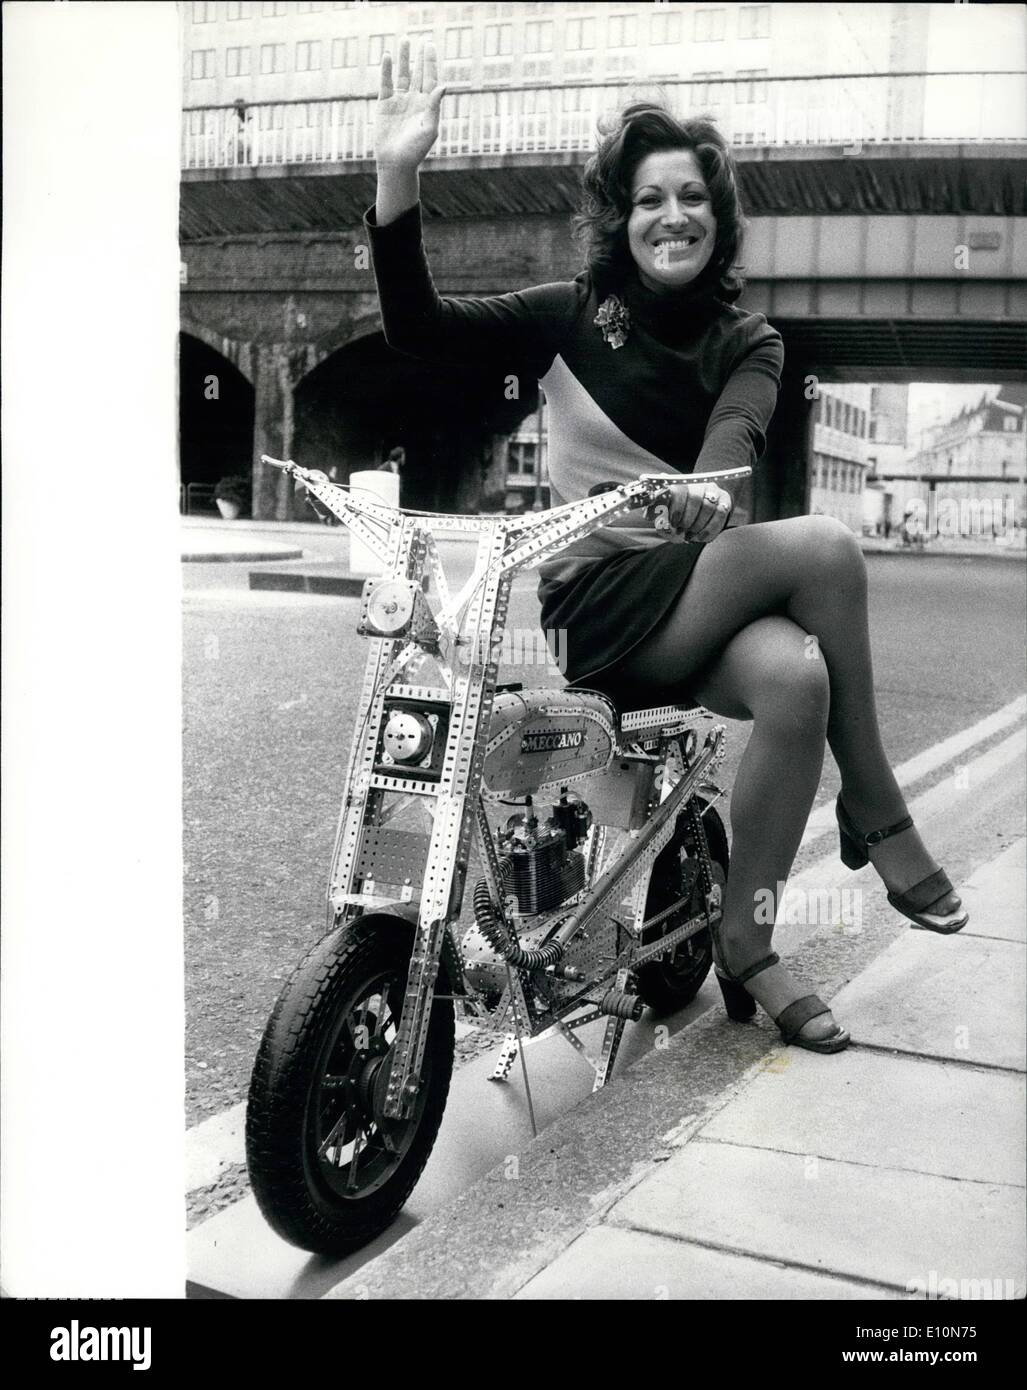 Jul. 07, 1973 - The Meccano Motor Cycle: One of the showpieces at today's Airfix/Meccano Press show at the Royal Festival Hall, - Stock Image